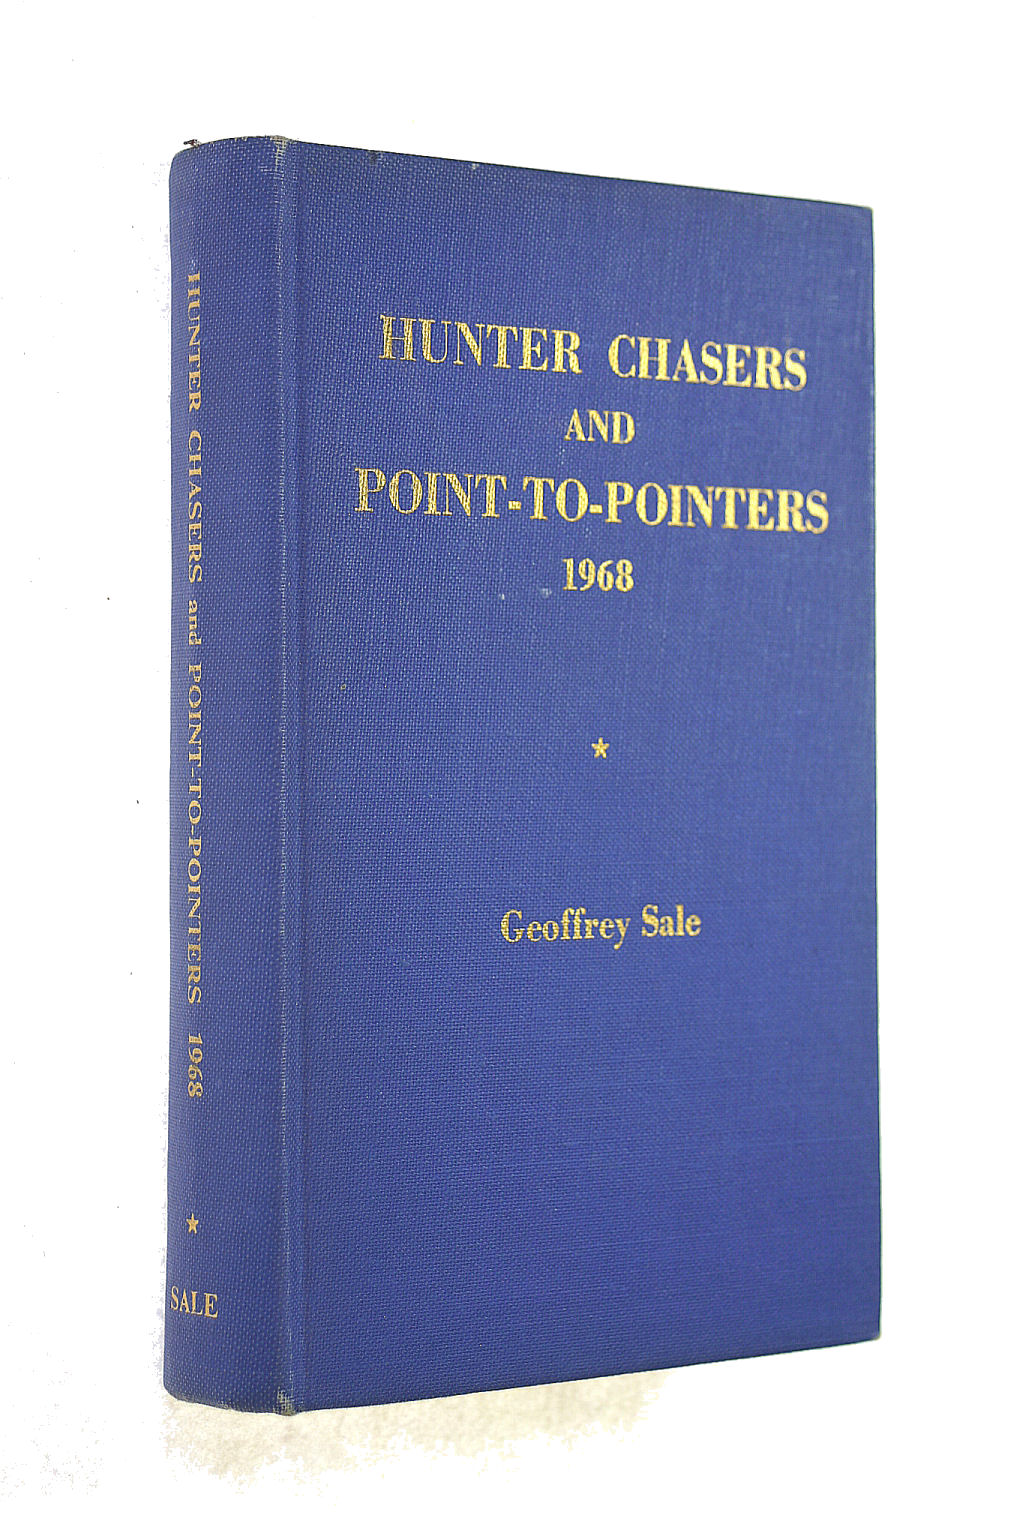 Image for Hunter Chasers And Point-To-Pointers, 1968